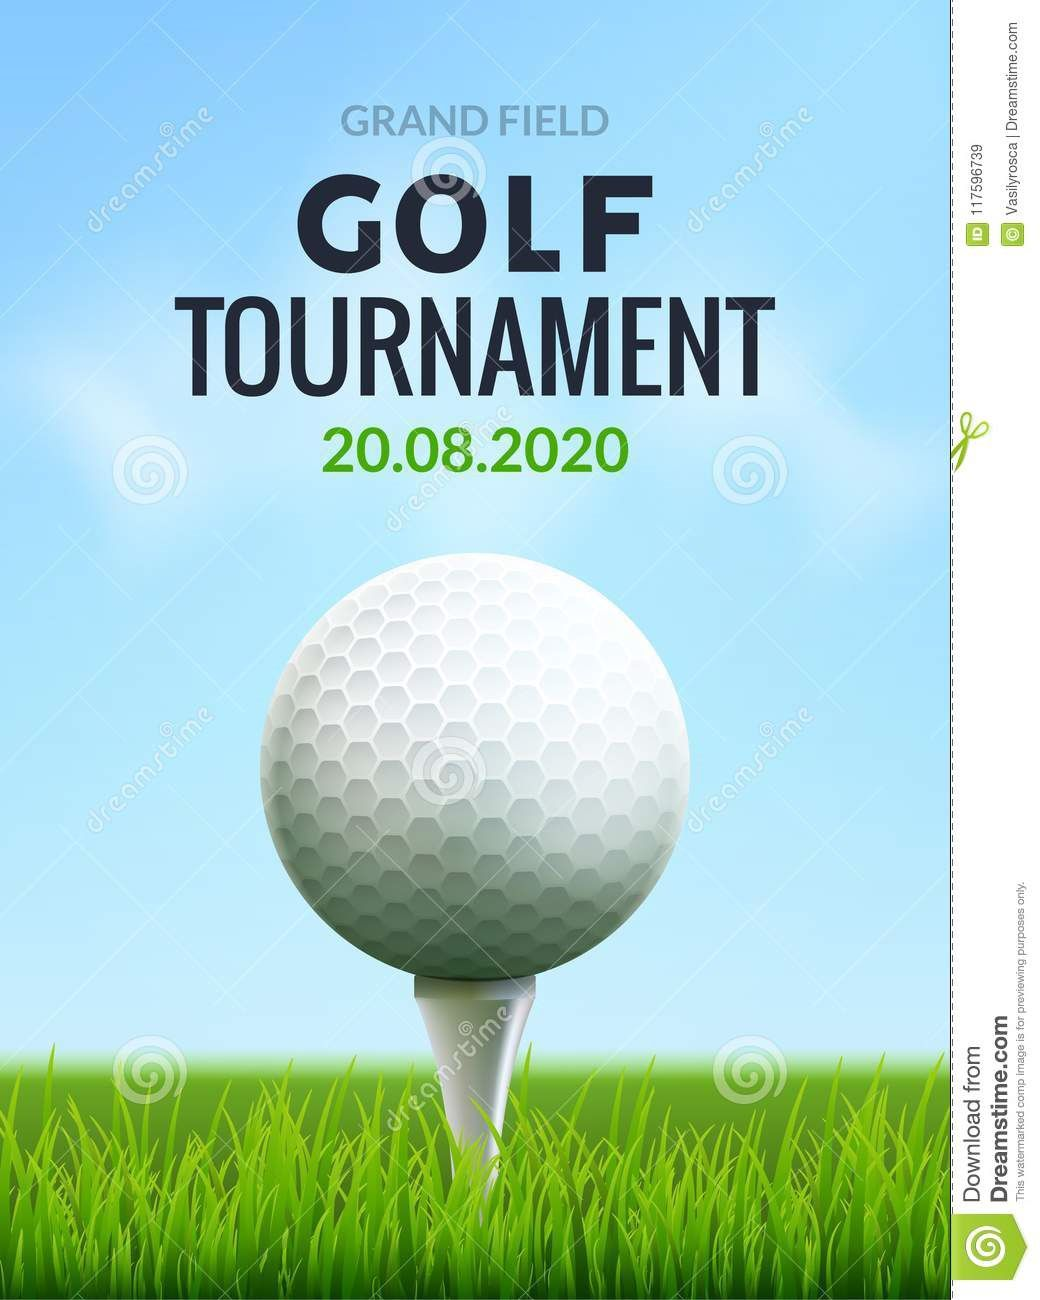 009 Surprising Golf Tournament Flyer Template Highest Clarity  Word Free PdfFull